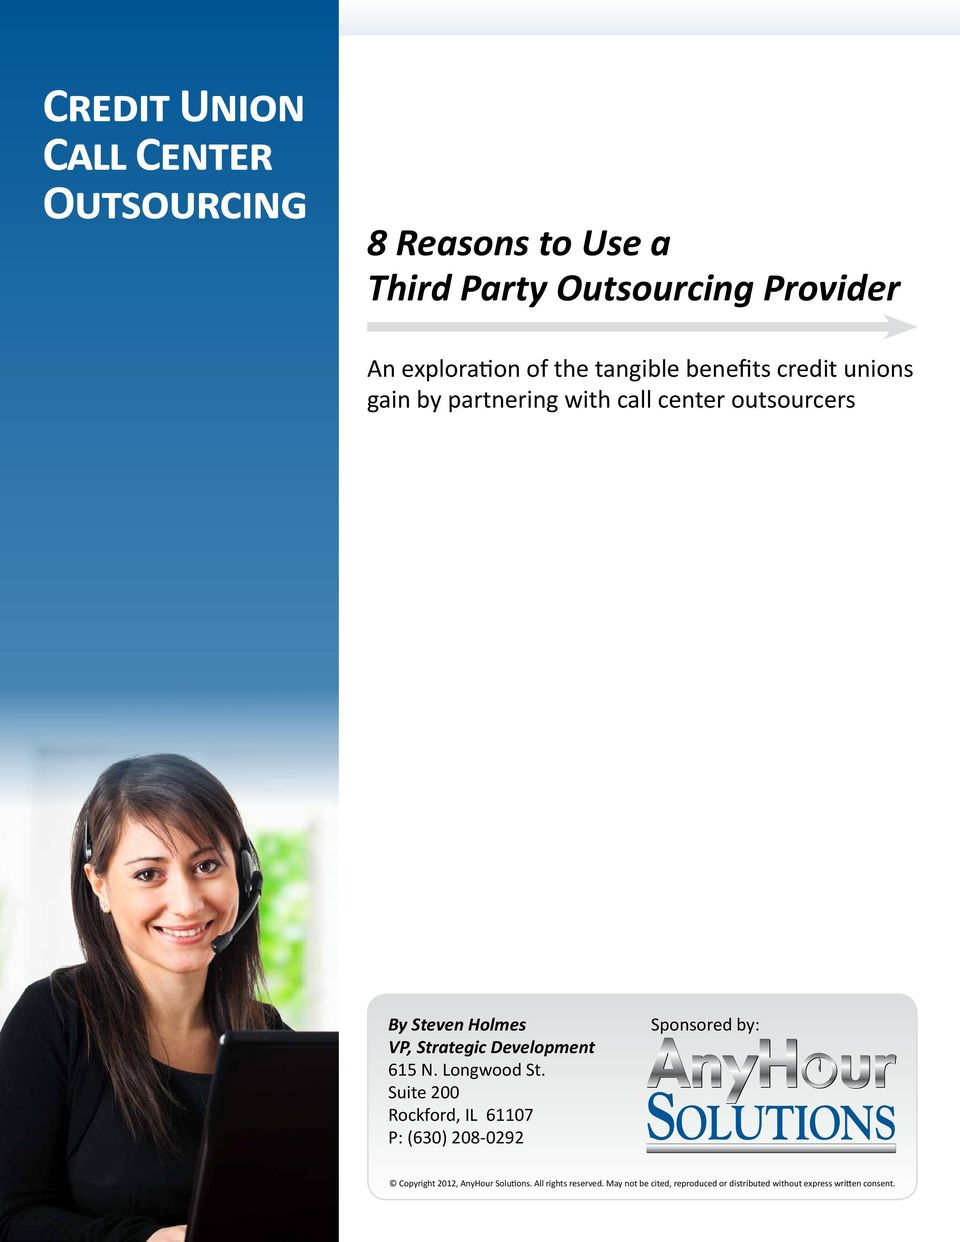 gain by partnering with call center outsourcers By Steven Holmes VP, Strategic